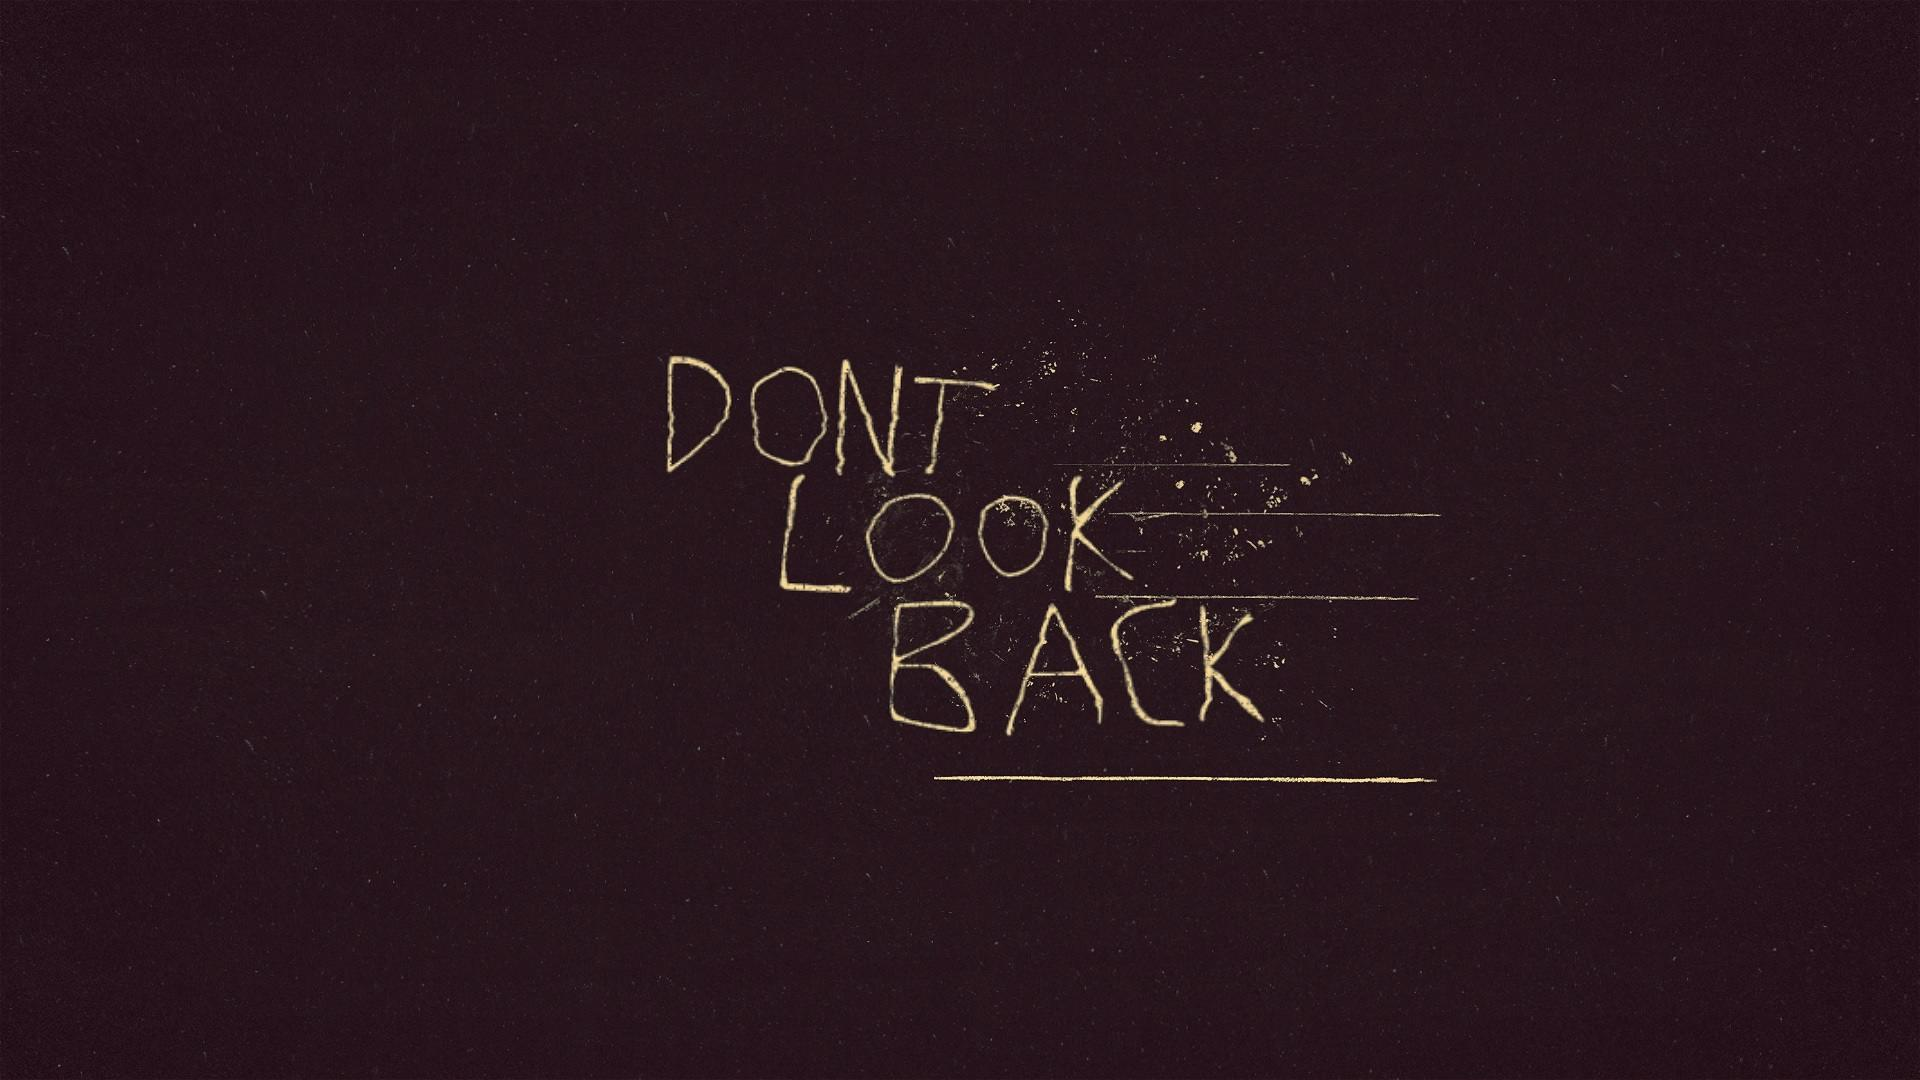 王致白「Dont look back」.jpg